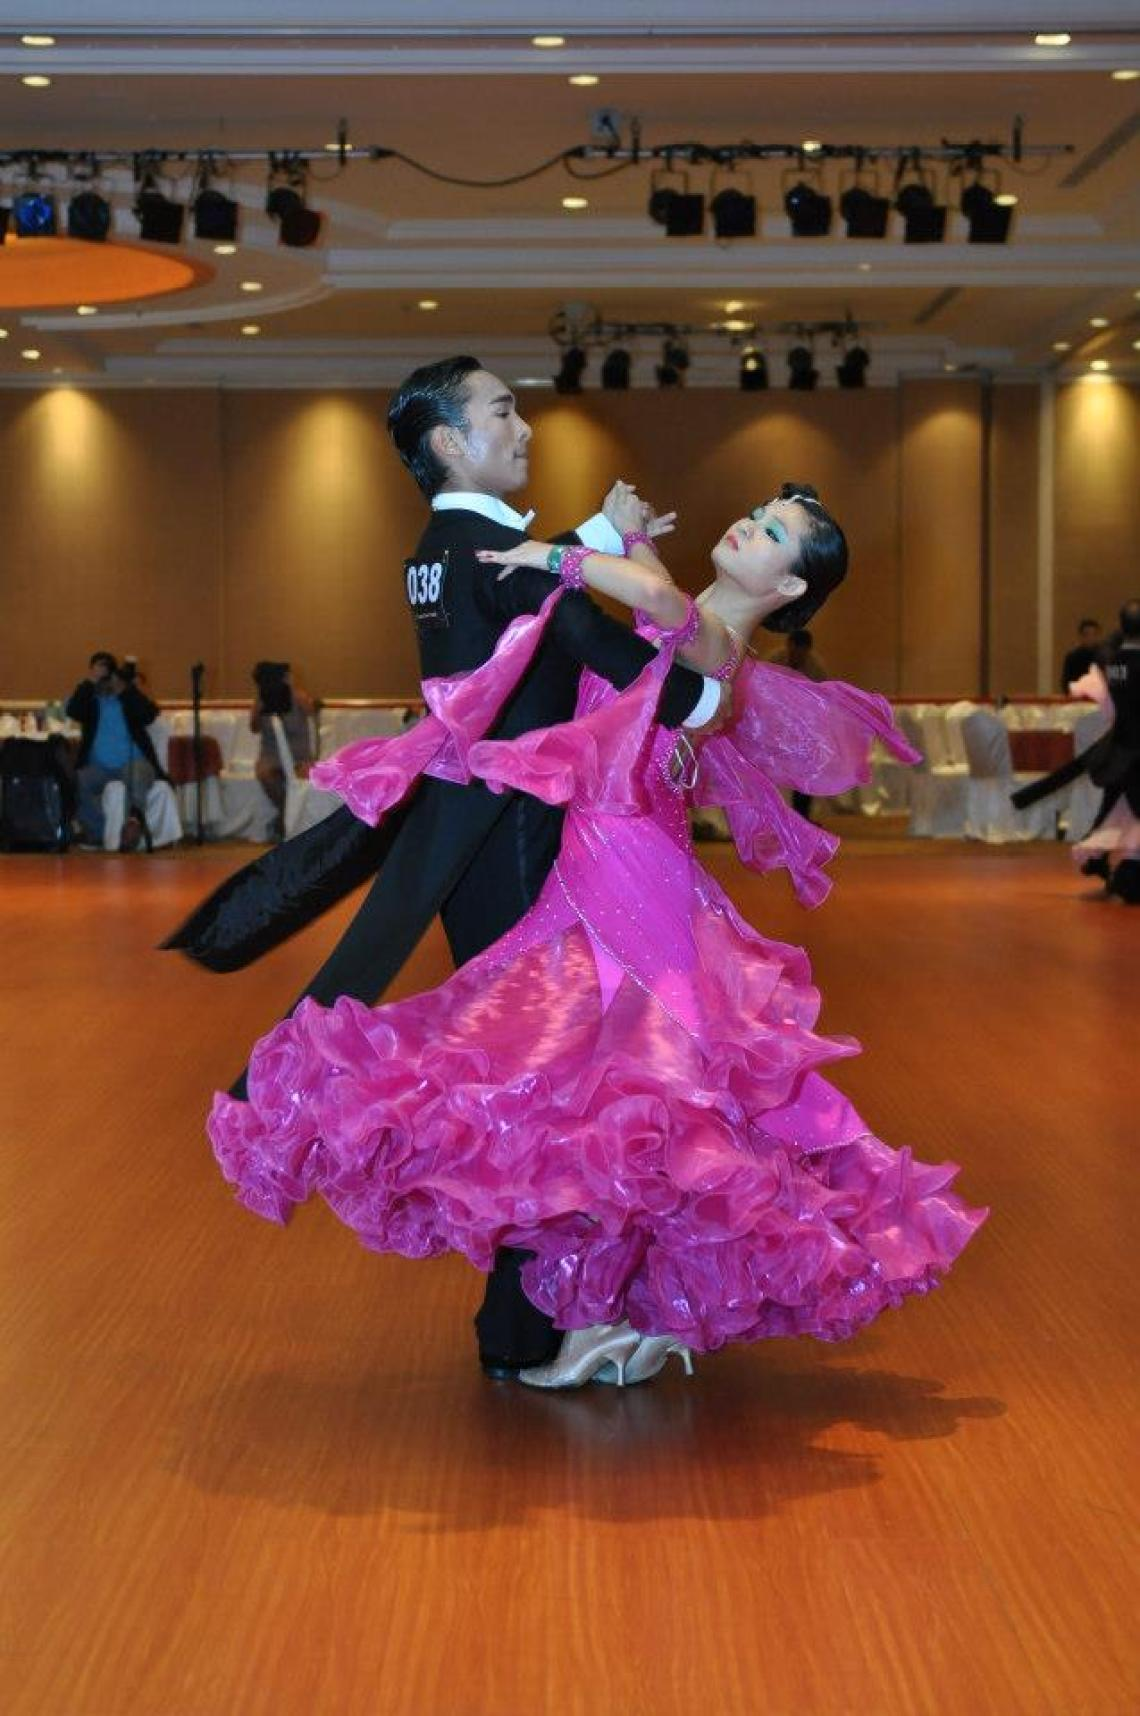 Man and woman dancing ballroom in a competition